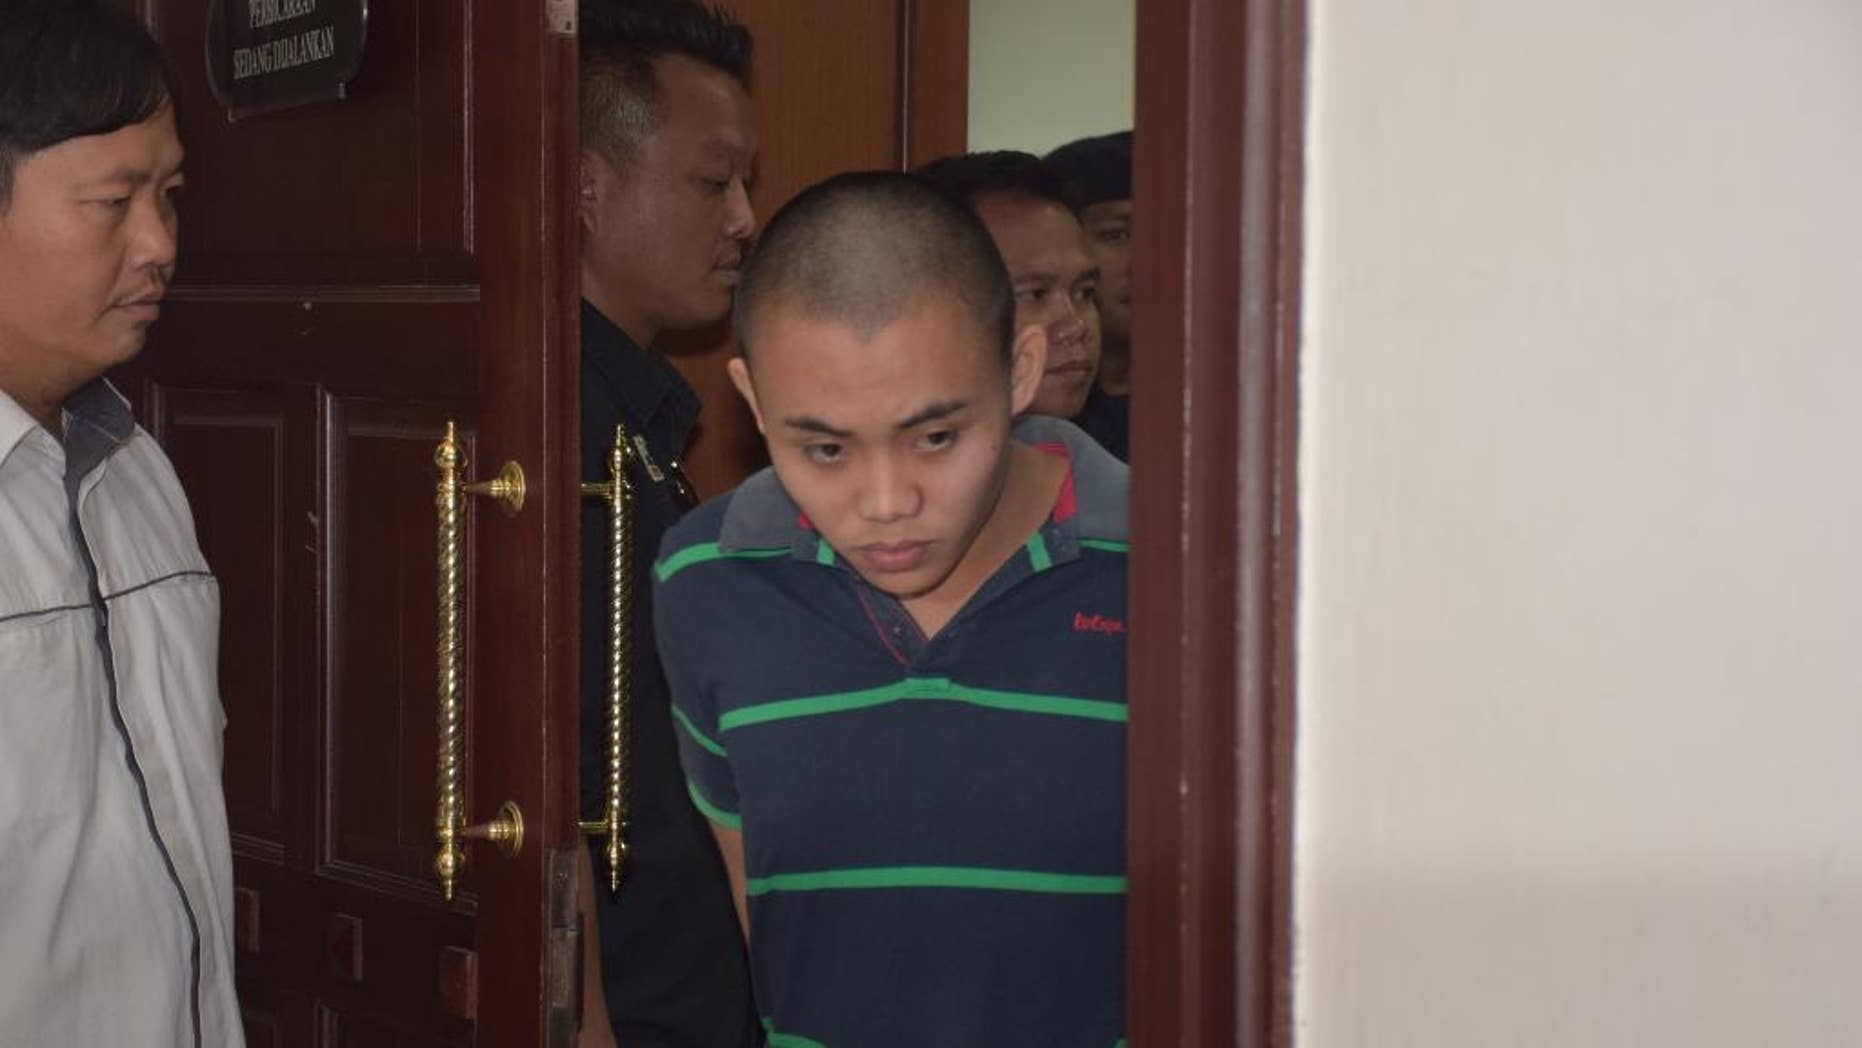 Zulkipli Abdullah, 23, center, walks out from a courtroom in Kuching, Malaysia, on Tuesday, March 31, 2015. On Tuesday, Prosecutor Muhamad Iskandar Ahmad said the high court found Zulkipli guilty of stabbing to death Aidan Brunger and Neil Gareth Dalton, two British medical students, on Borneo island last August. (AP Photo)